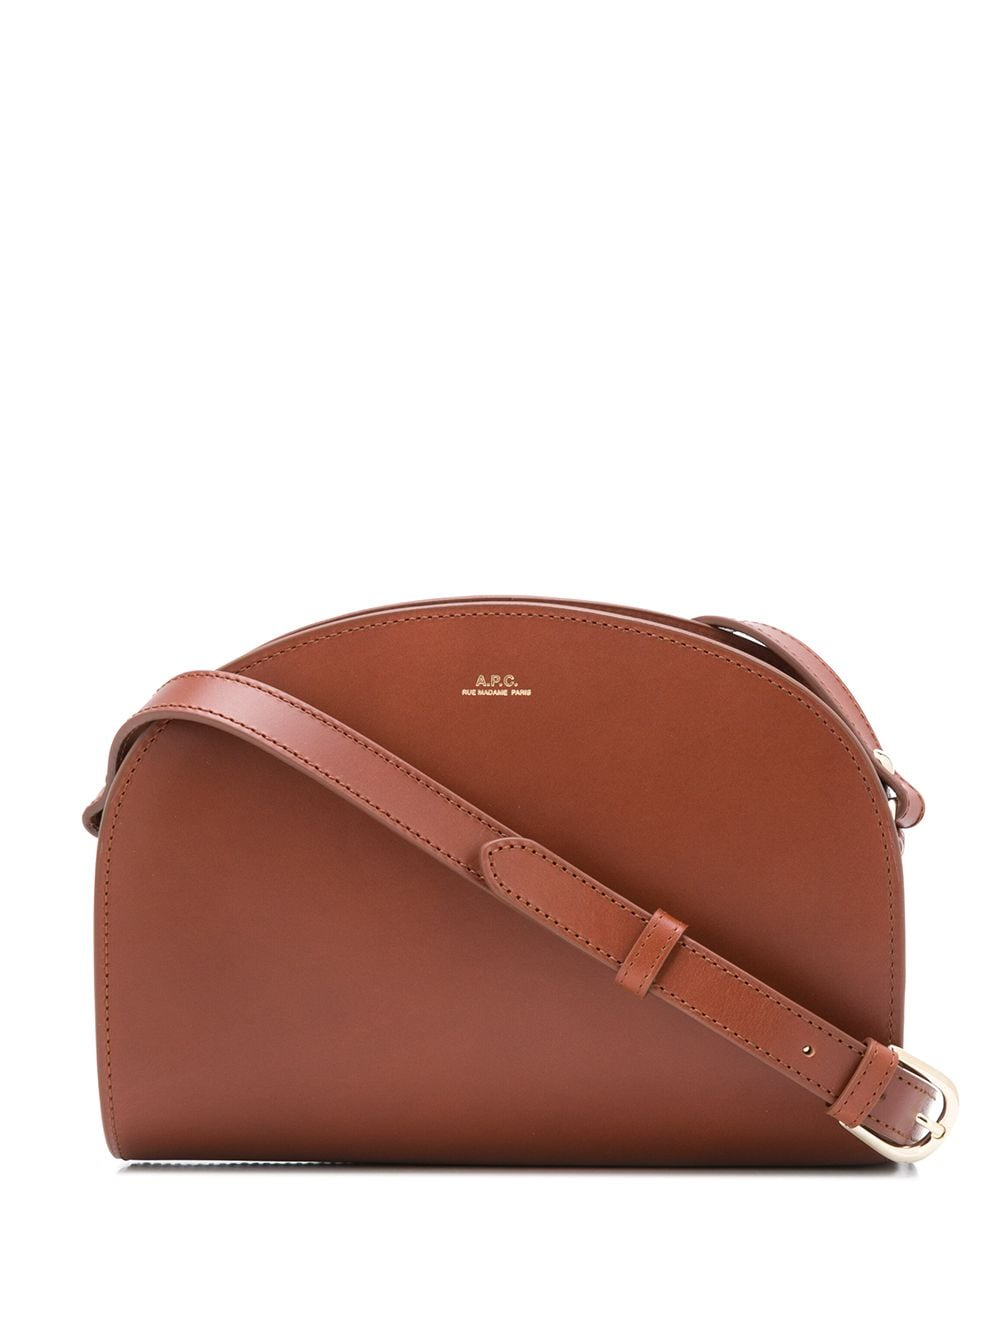 <p class='small-title'>A.P.C.</p>A.P.C. Demi-Lune Crossbody Bag